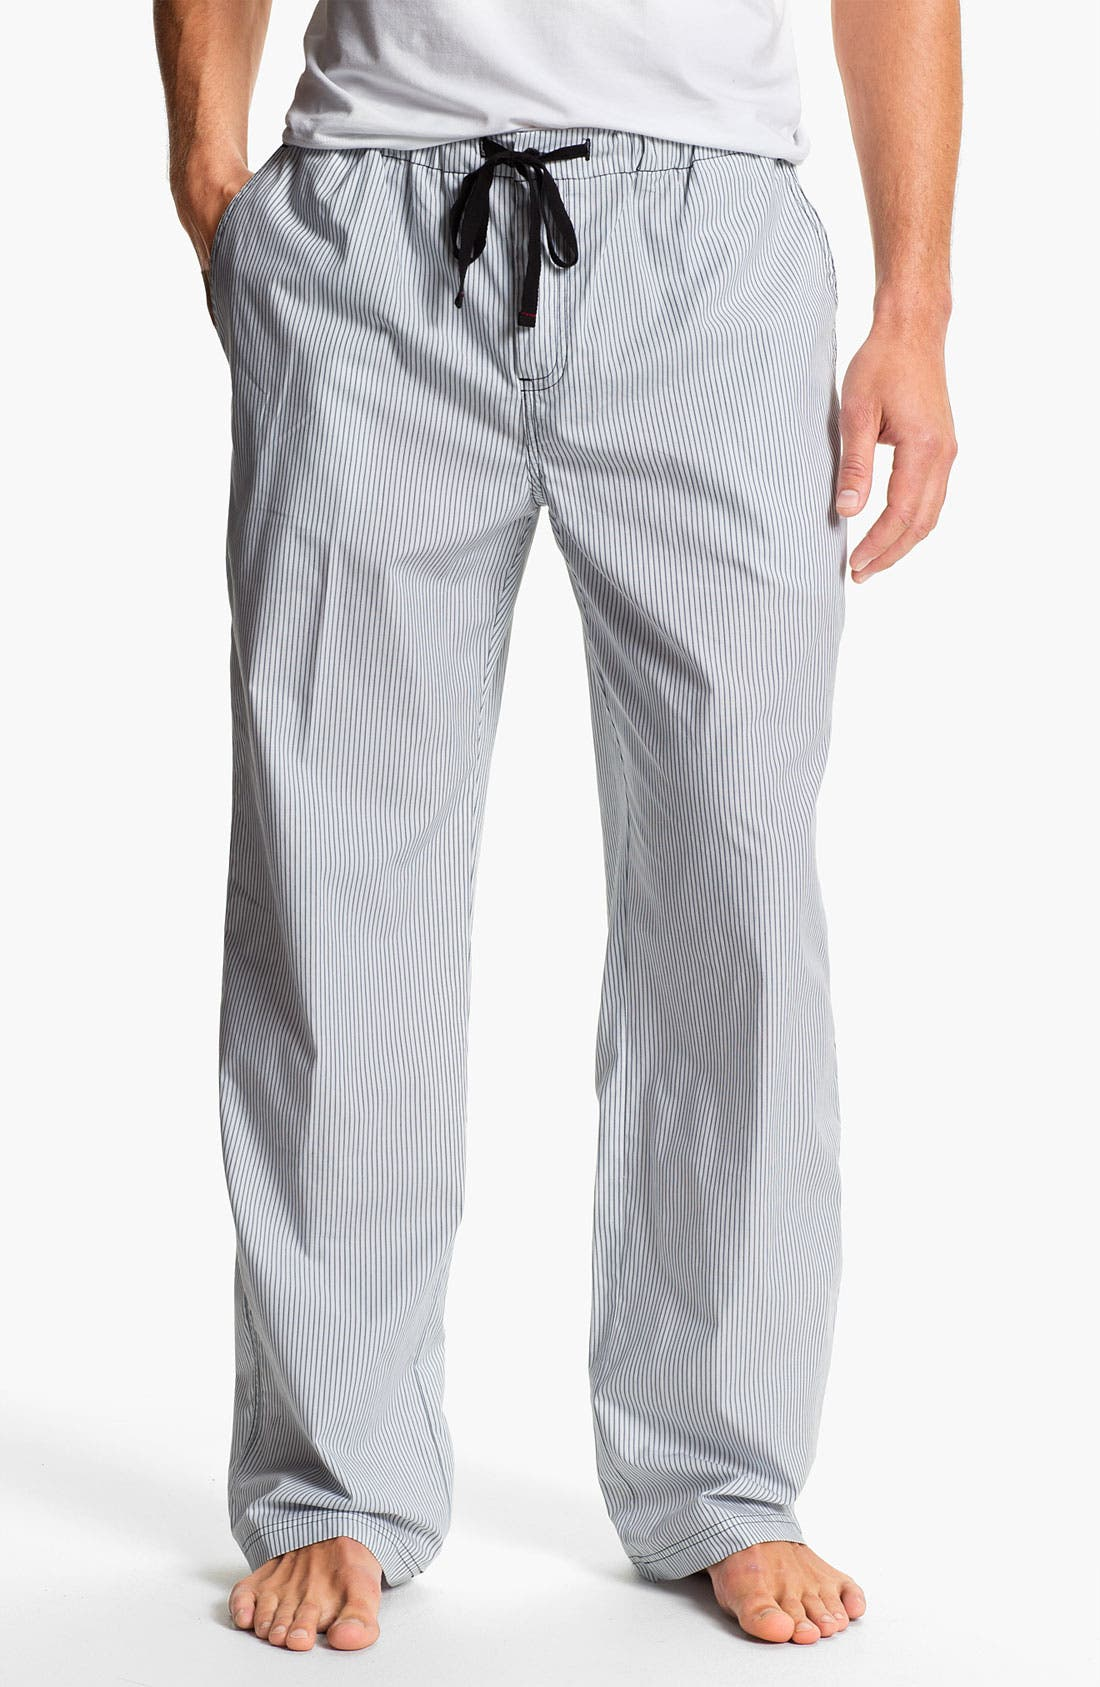 Main Image - Daniel Buchler Woven Cotton Lounge Pants